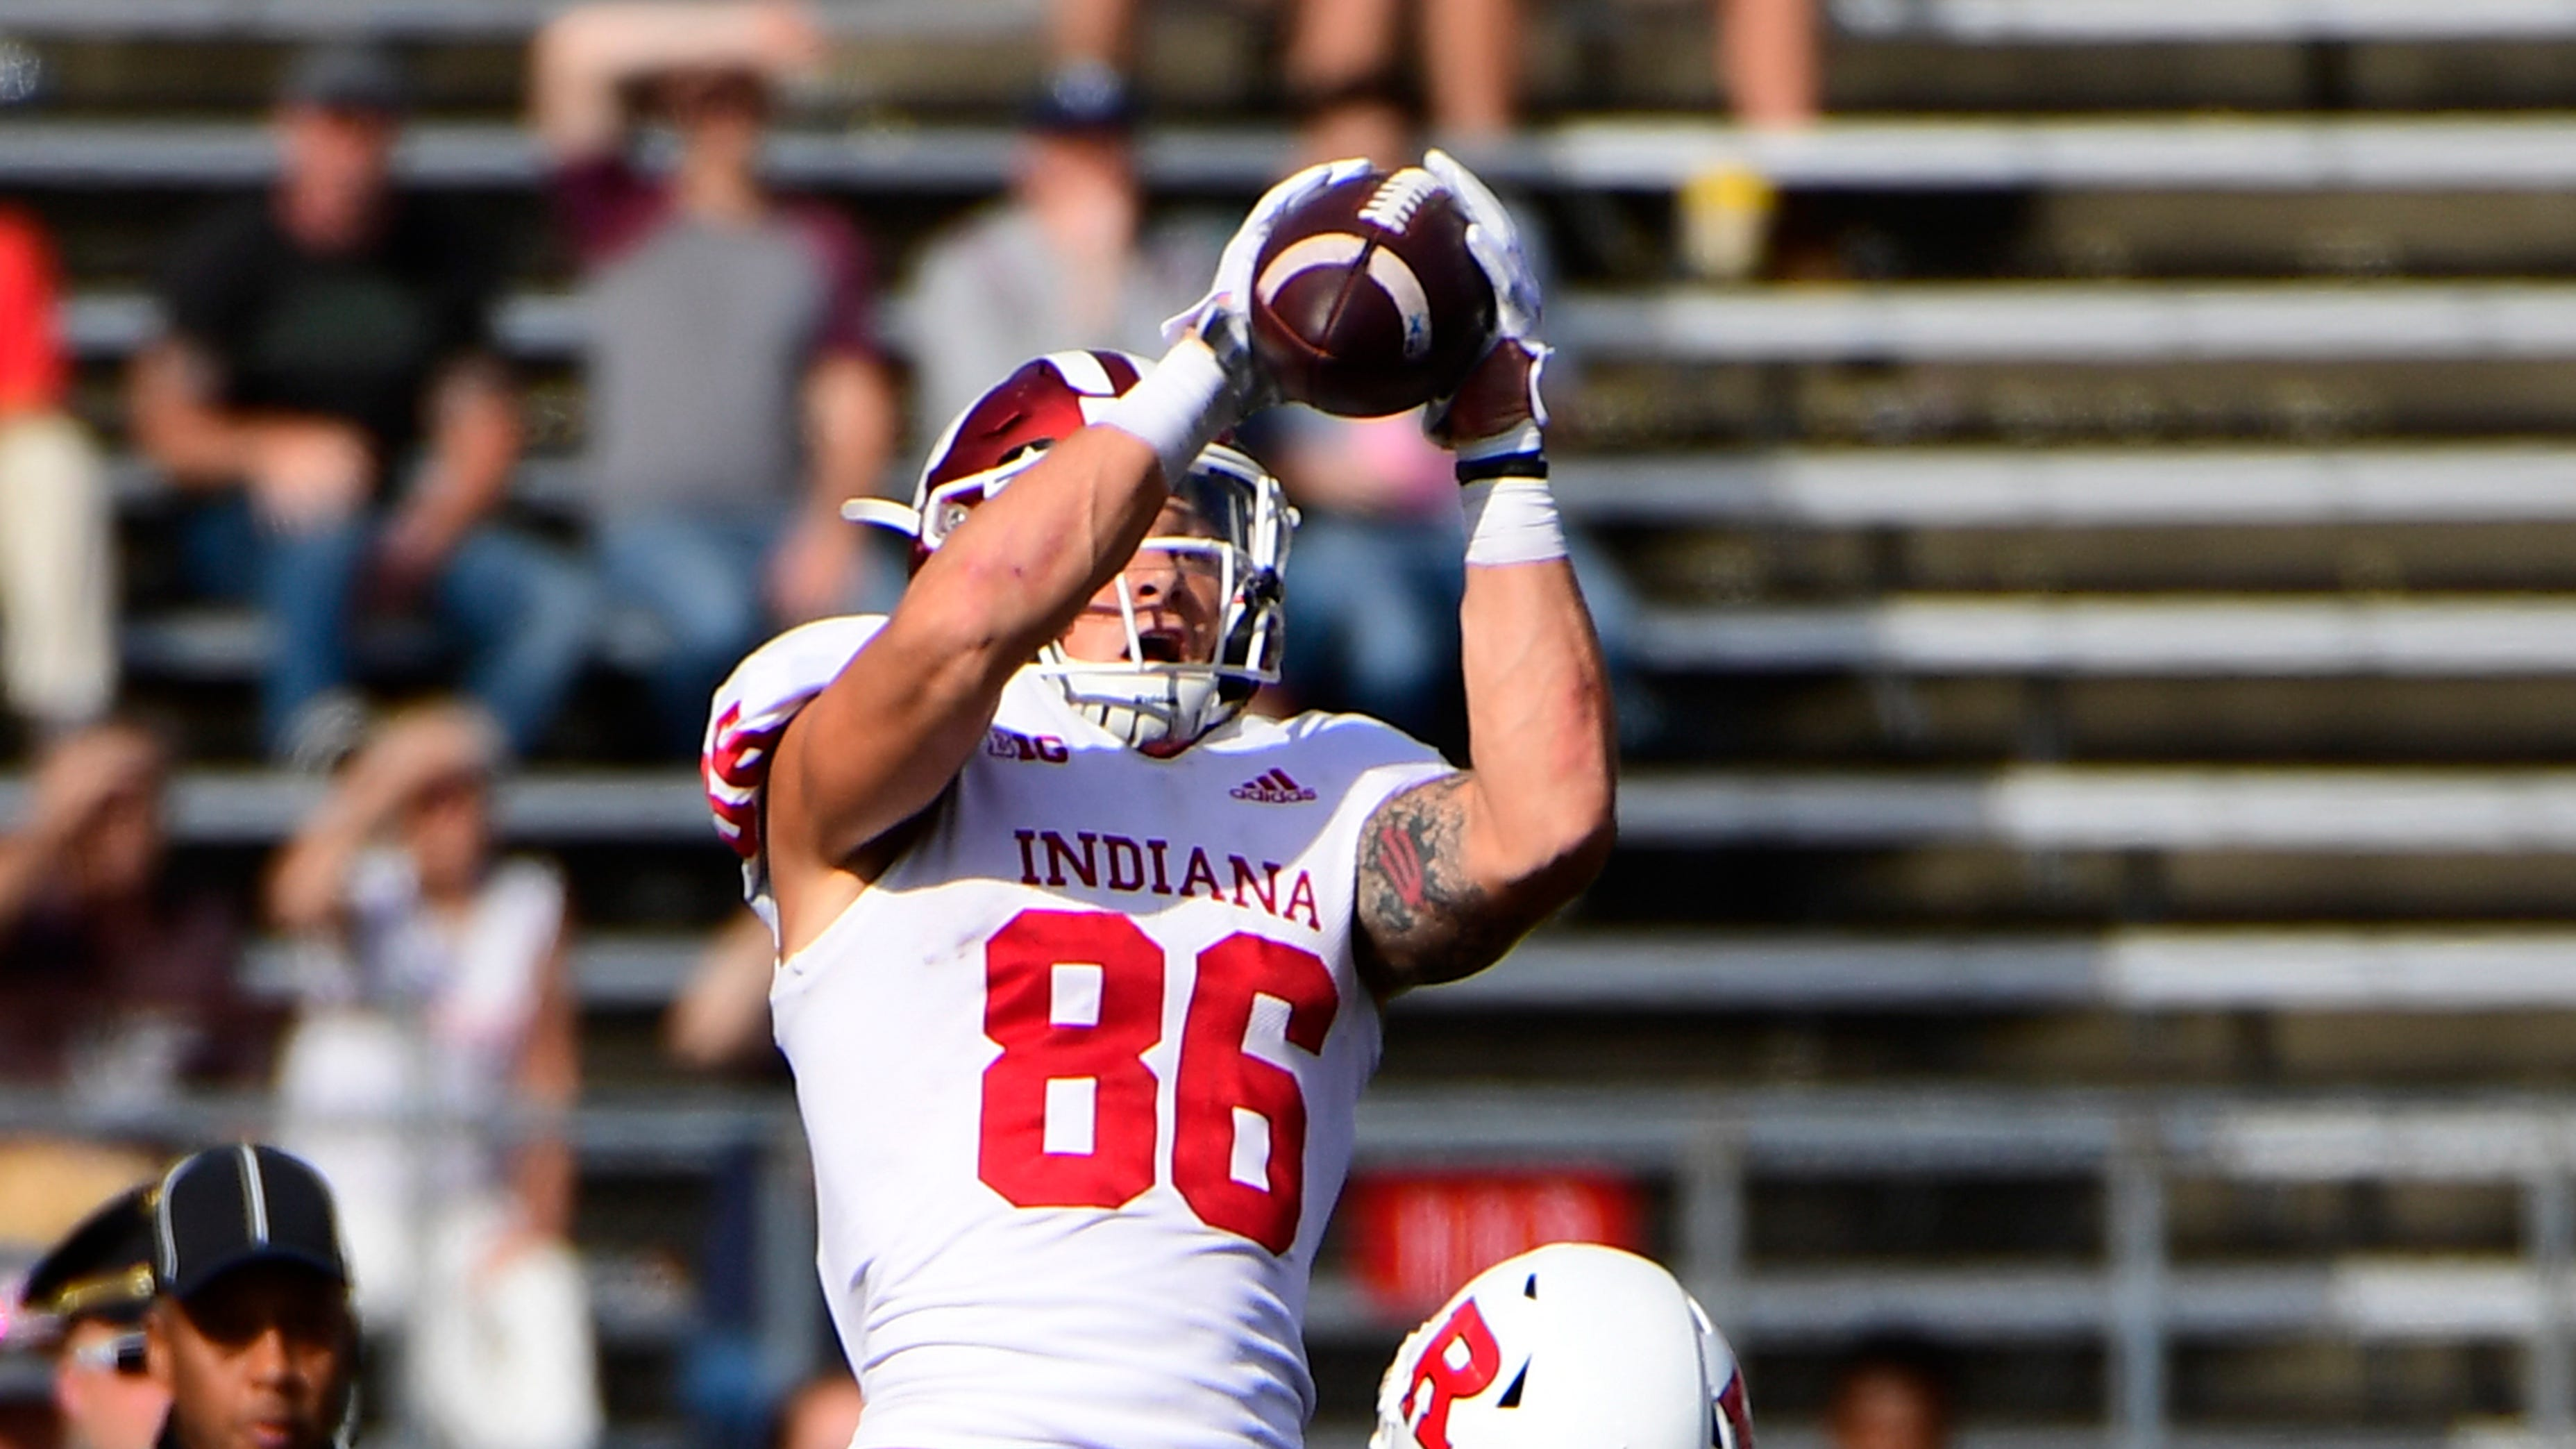 Late fourth-down call saves Hoosiers blushes vs. Rutgers